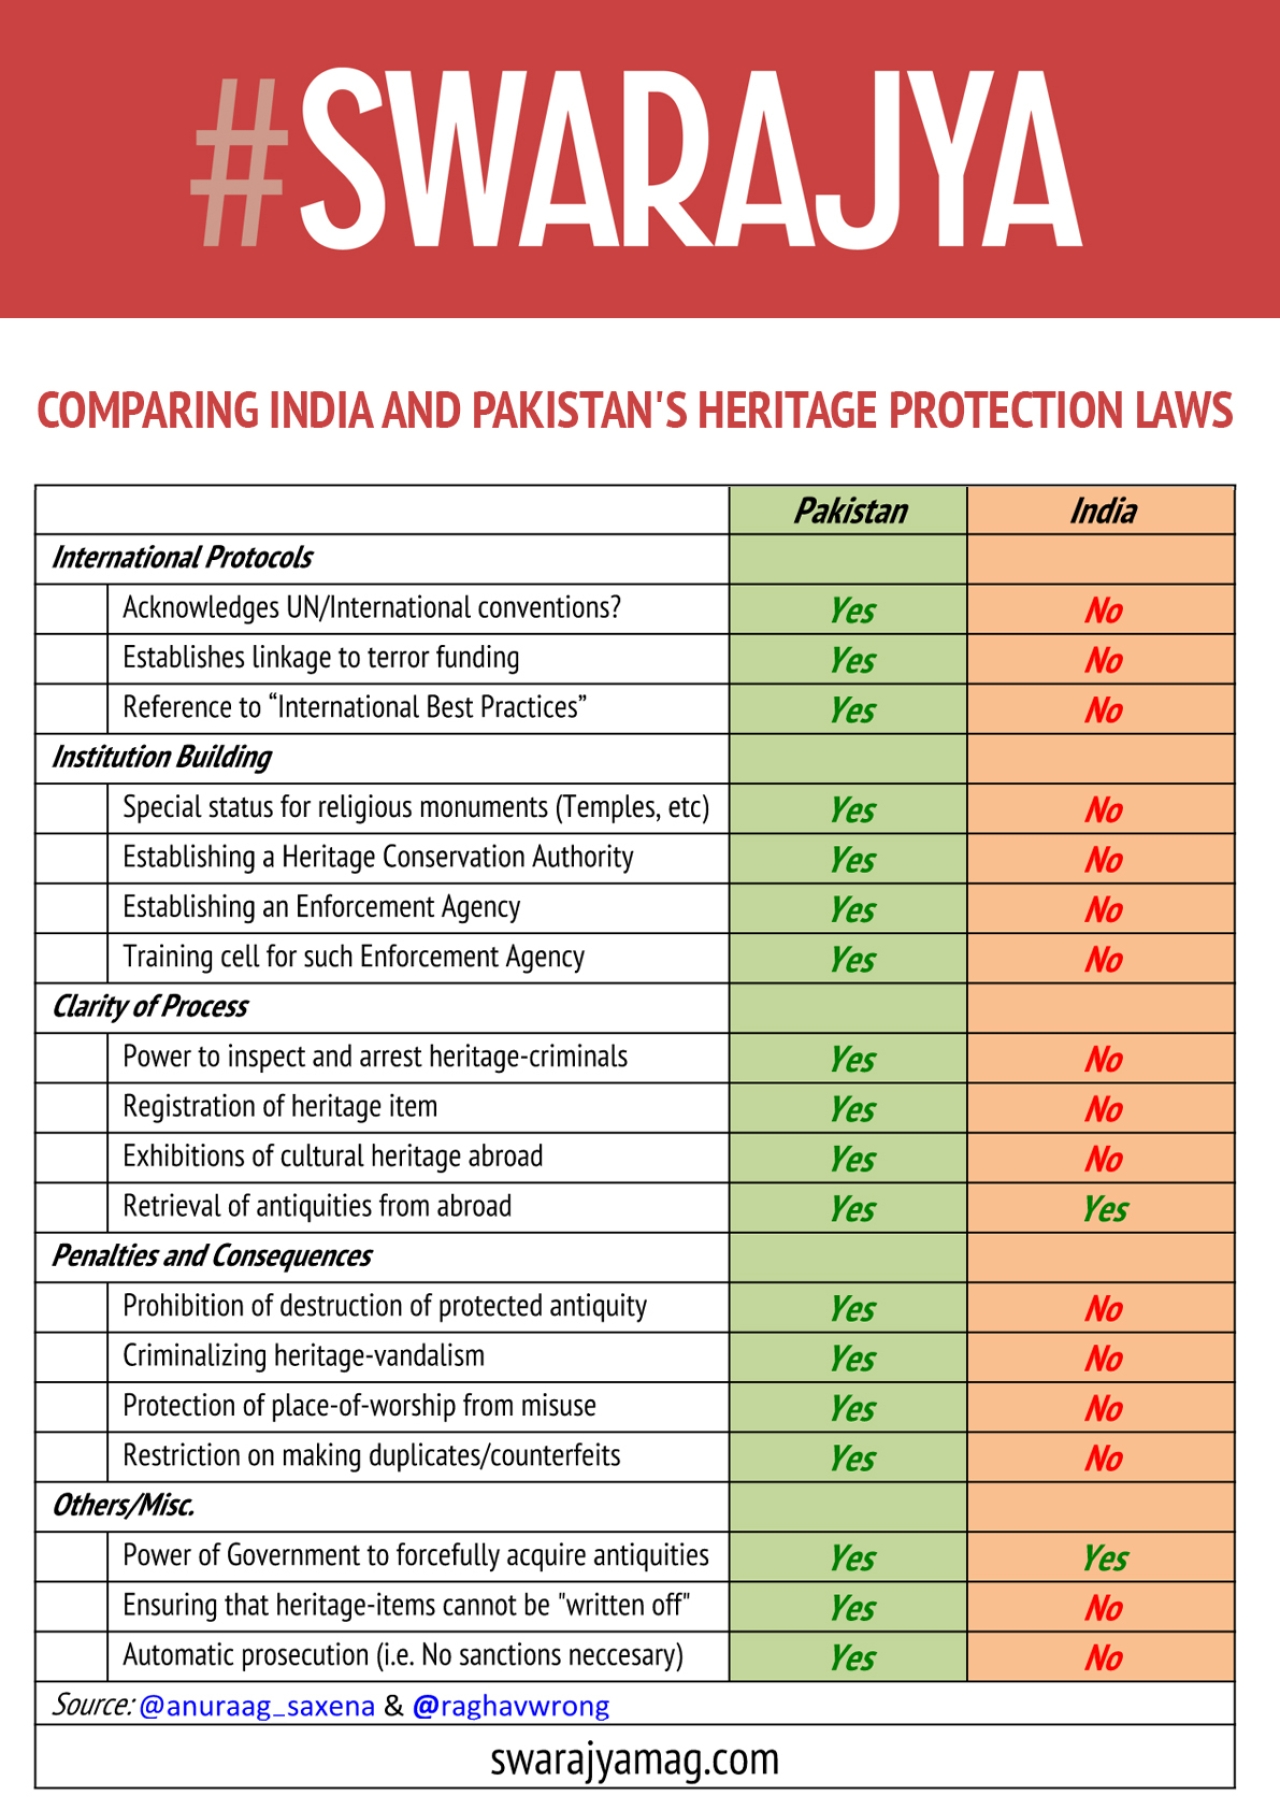 Comparing India's Antiquities Bill 2017 and Pakistan's KP Antiquities Bill 2016